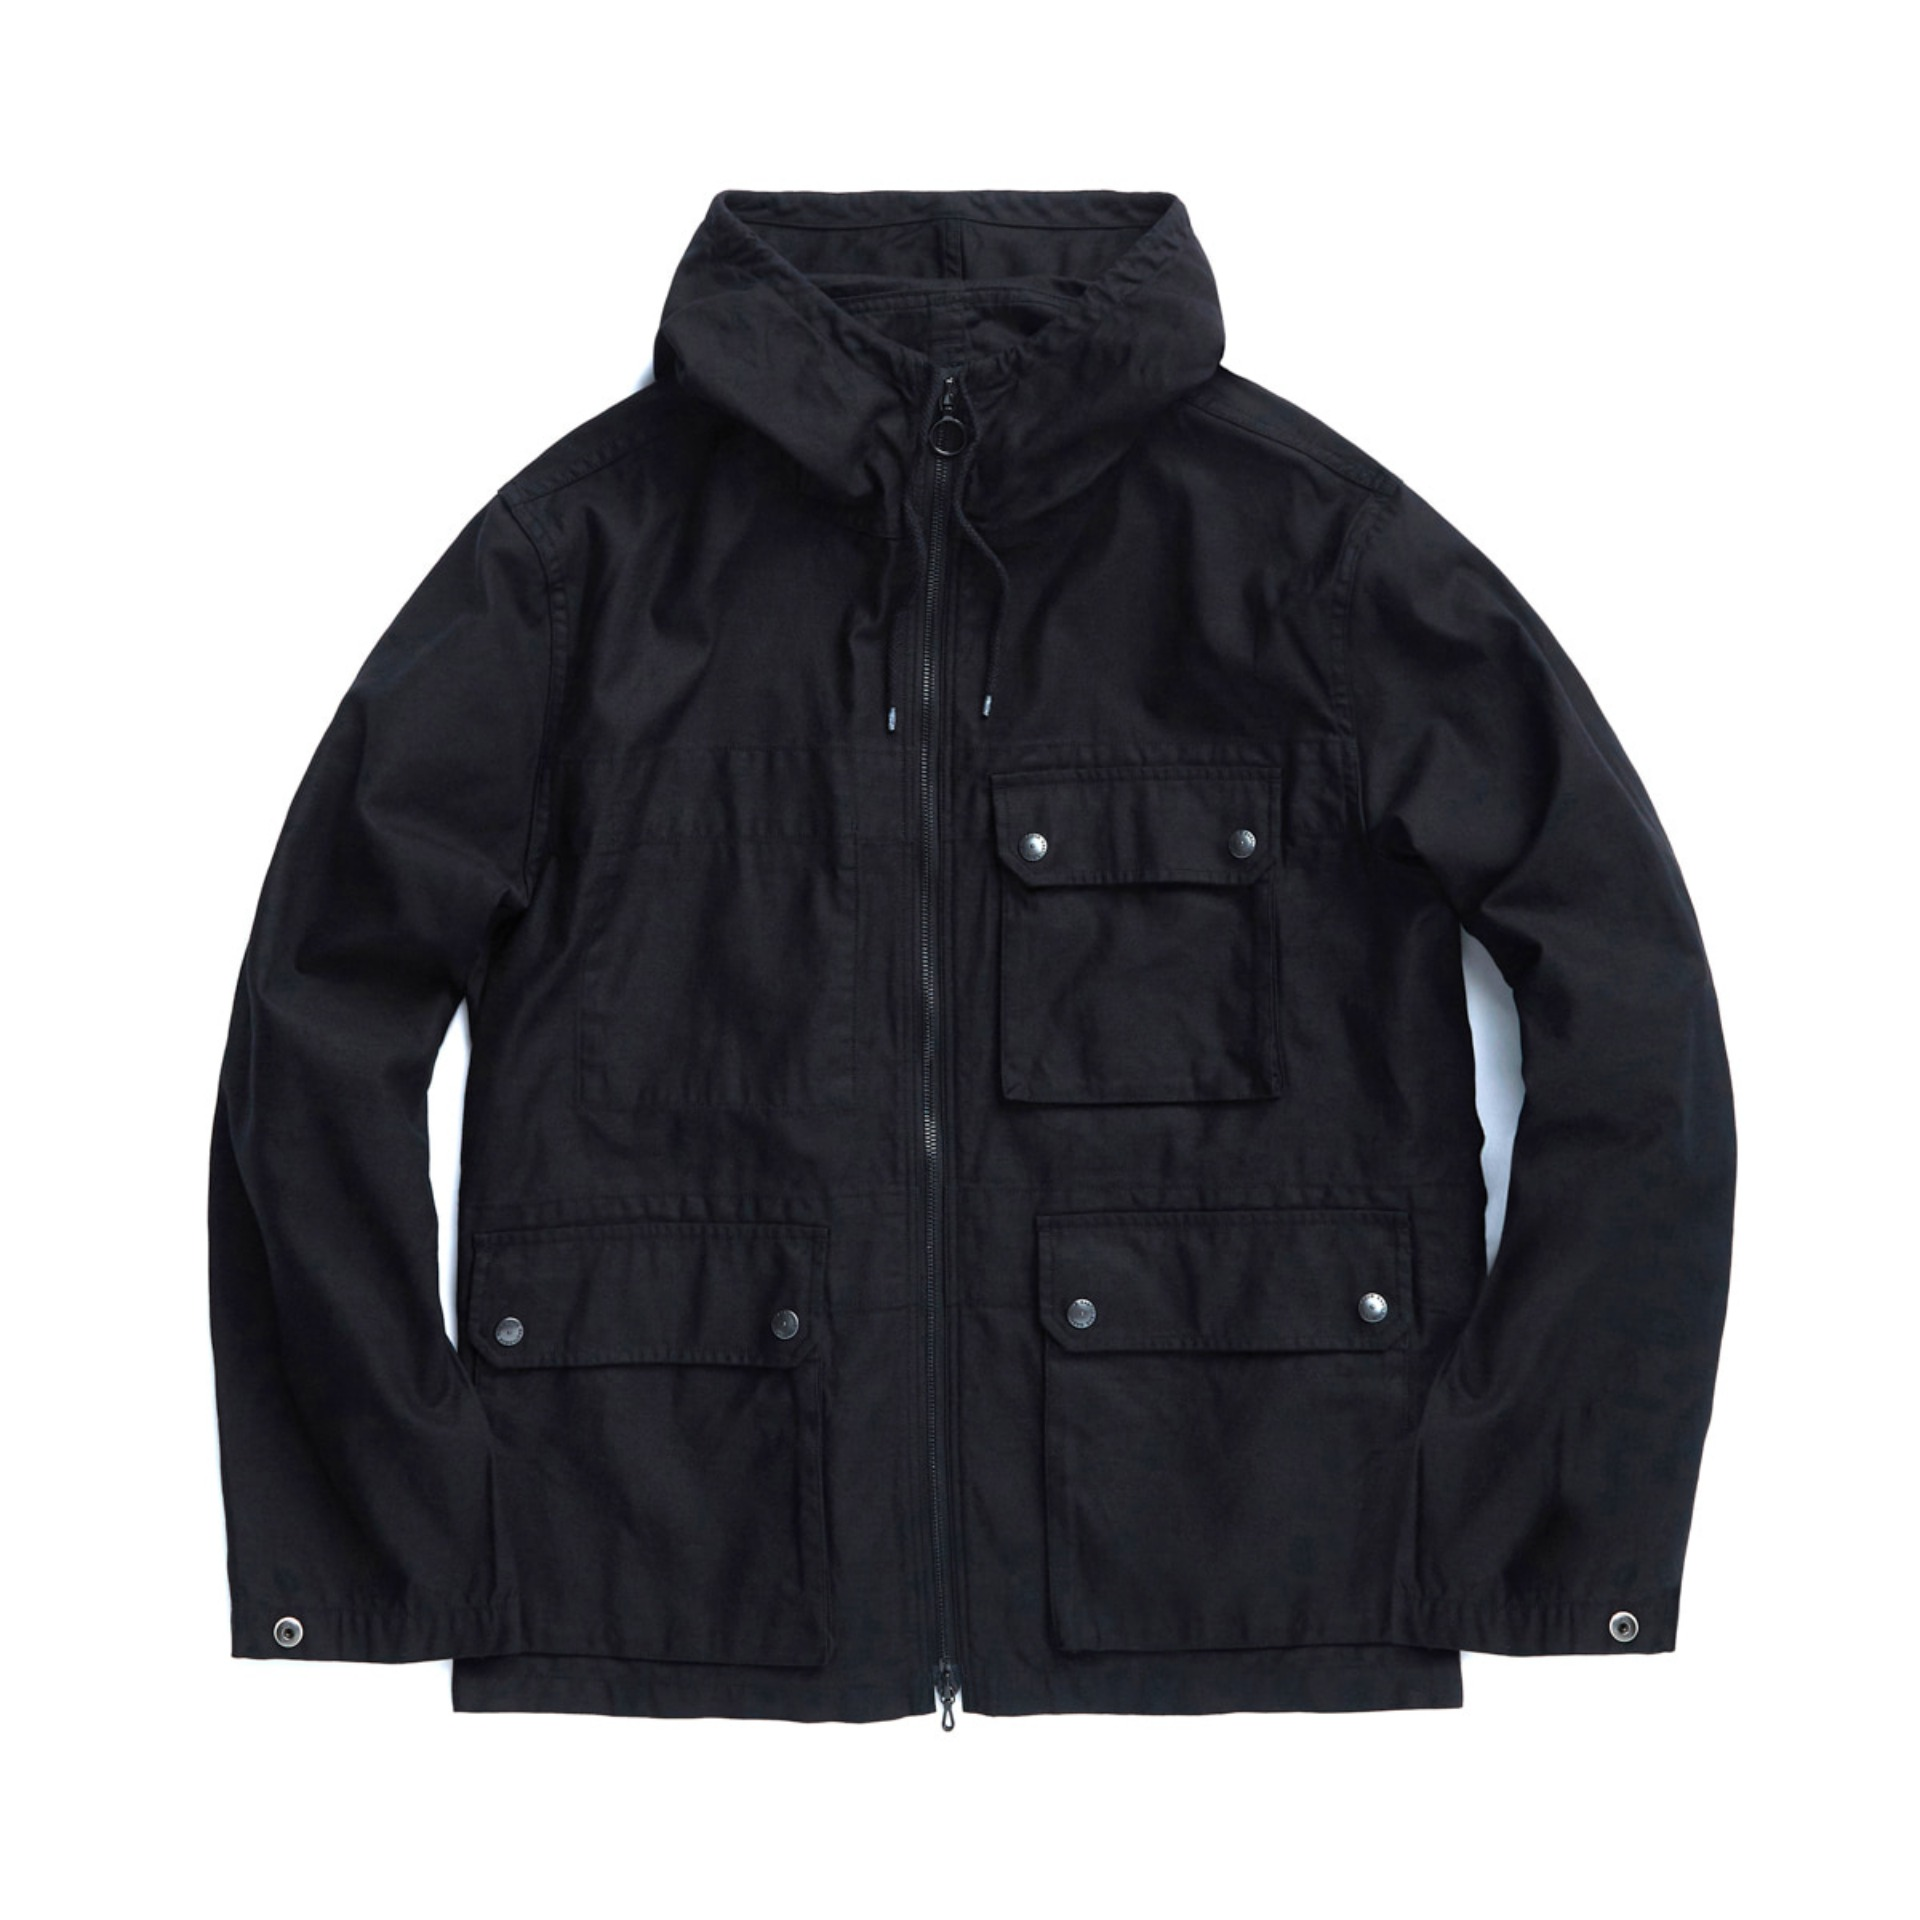 Snokel Jacket(Black BackSatin)